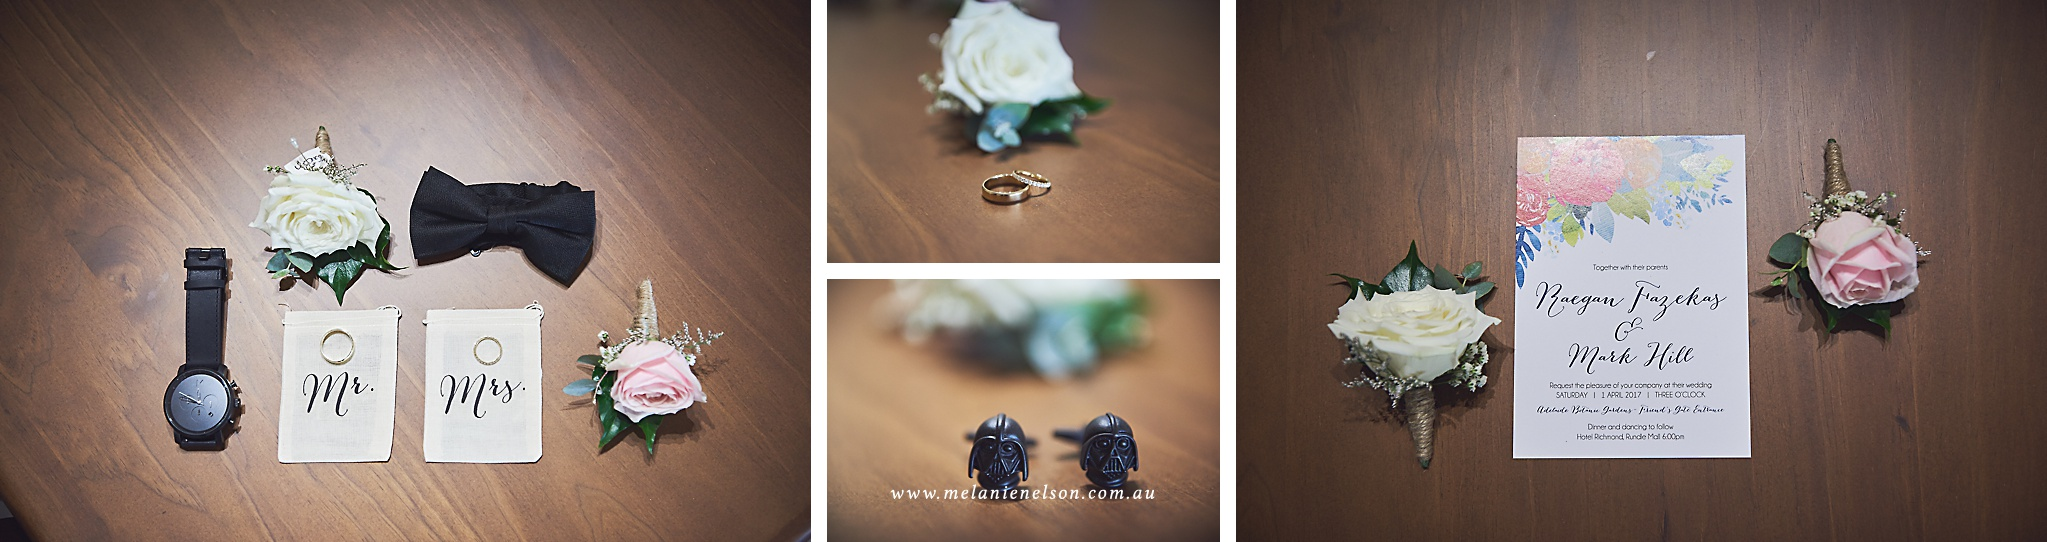 adelaide_wedding_photographer_0000.jpg